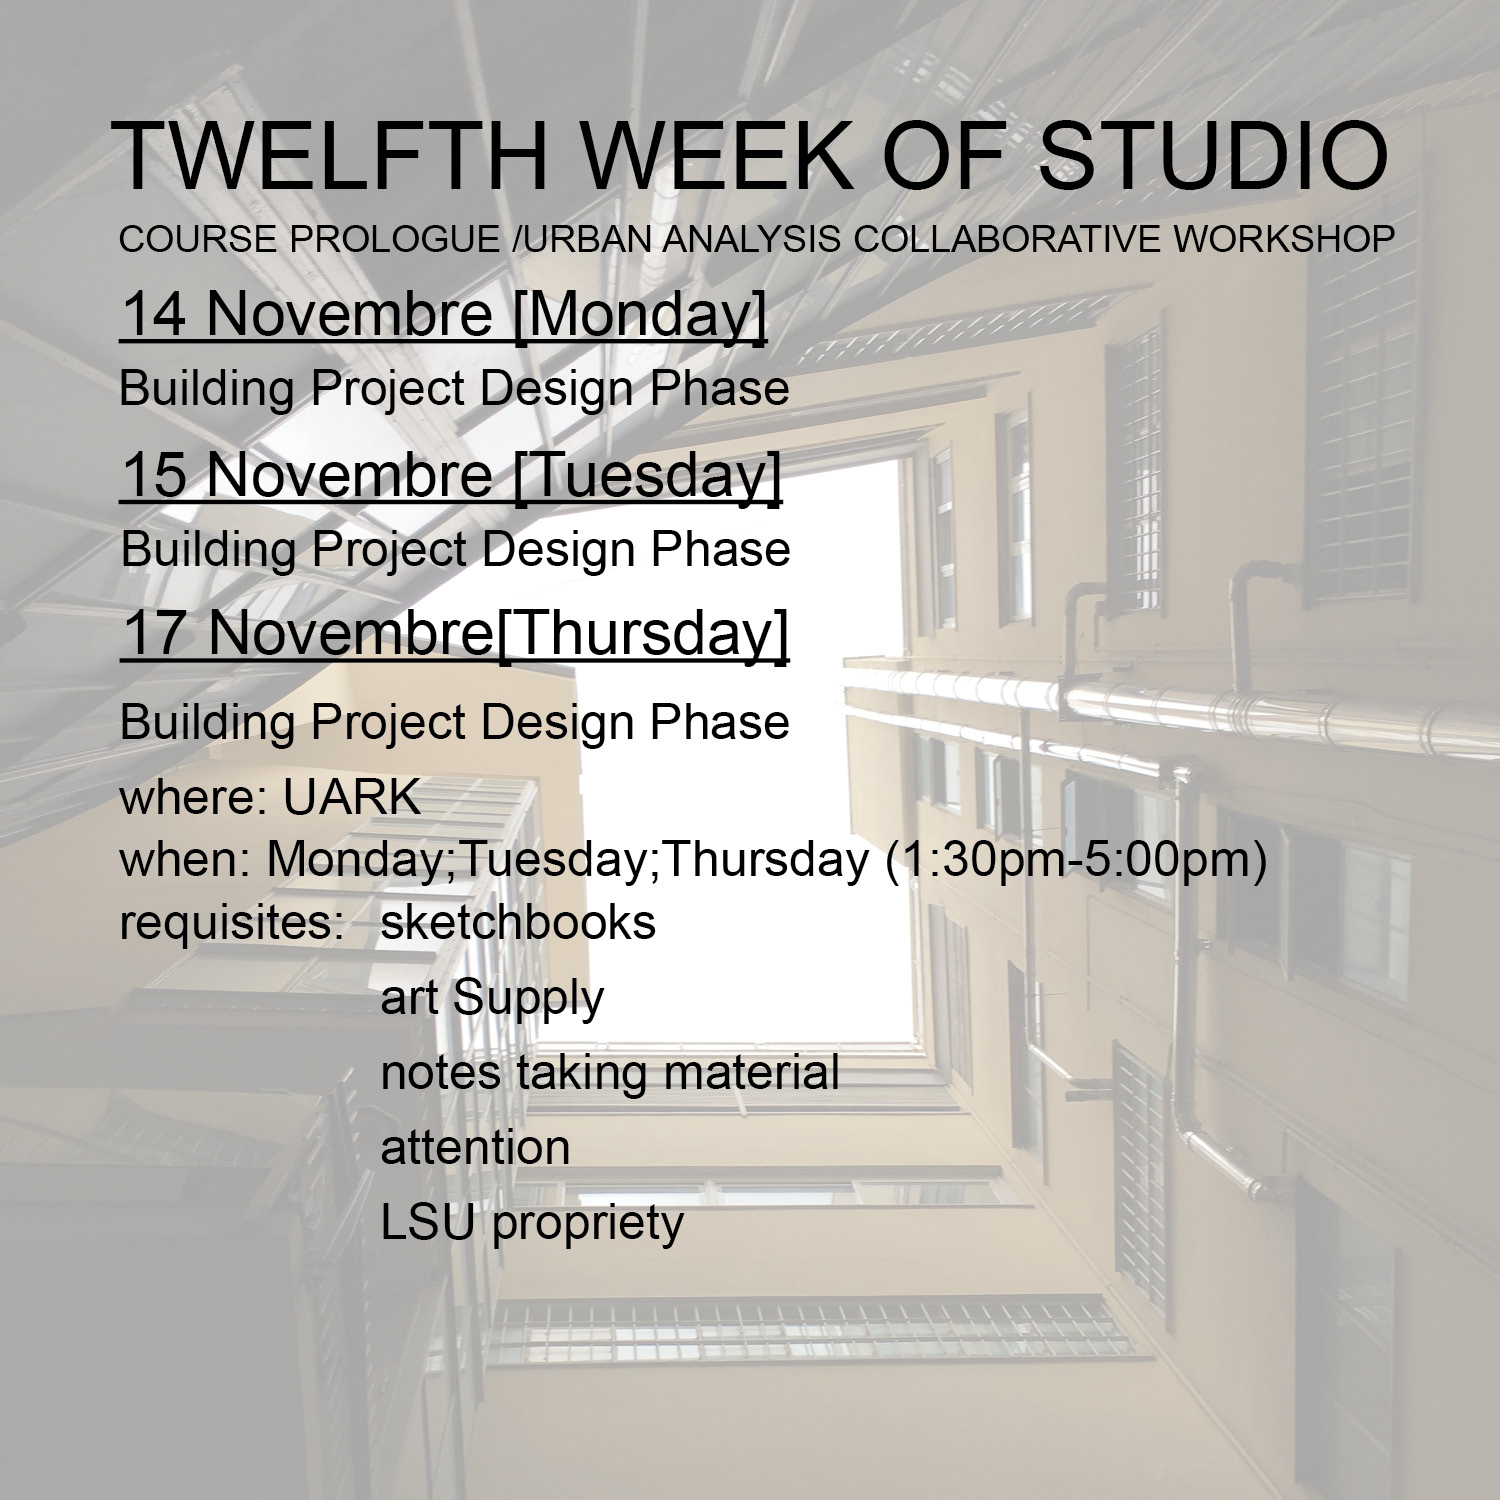 2016_Tewlfth week studio